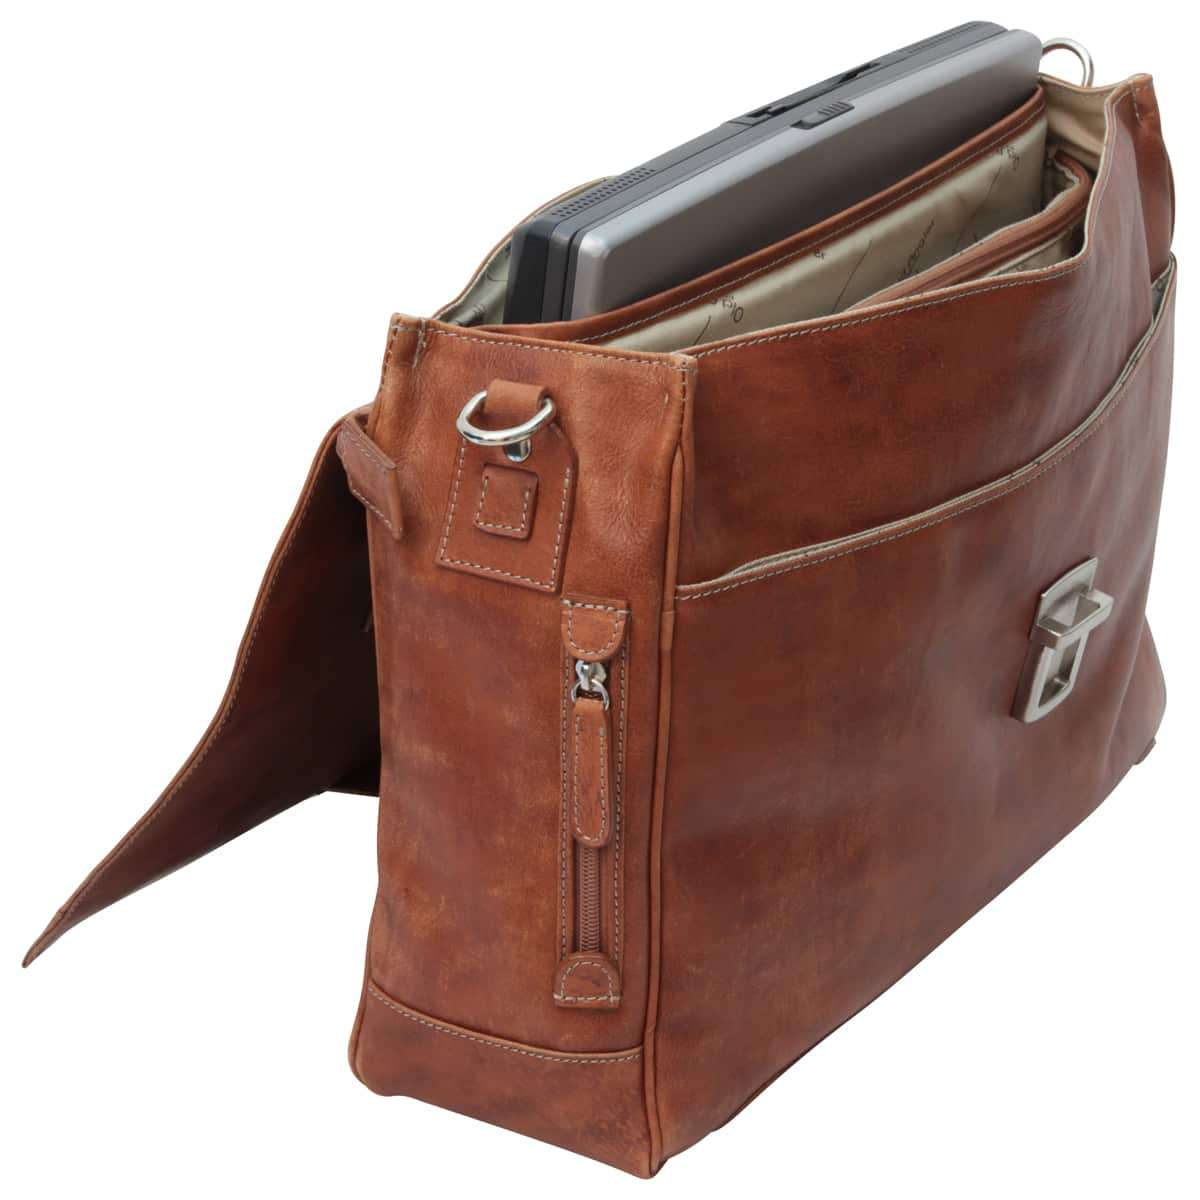 Leather Briefcase with back pocket - Brown Colonial | 082161CO UK | Old Angler Firenze